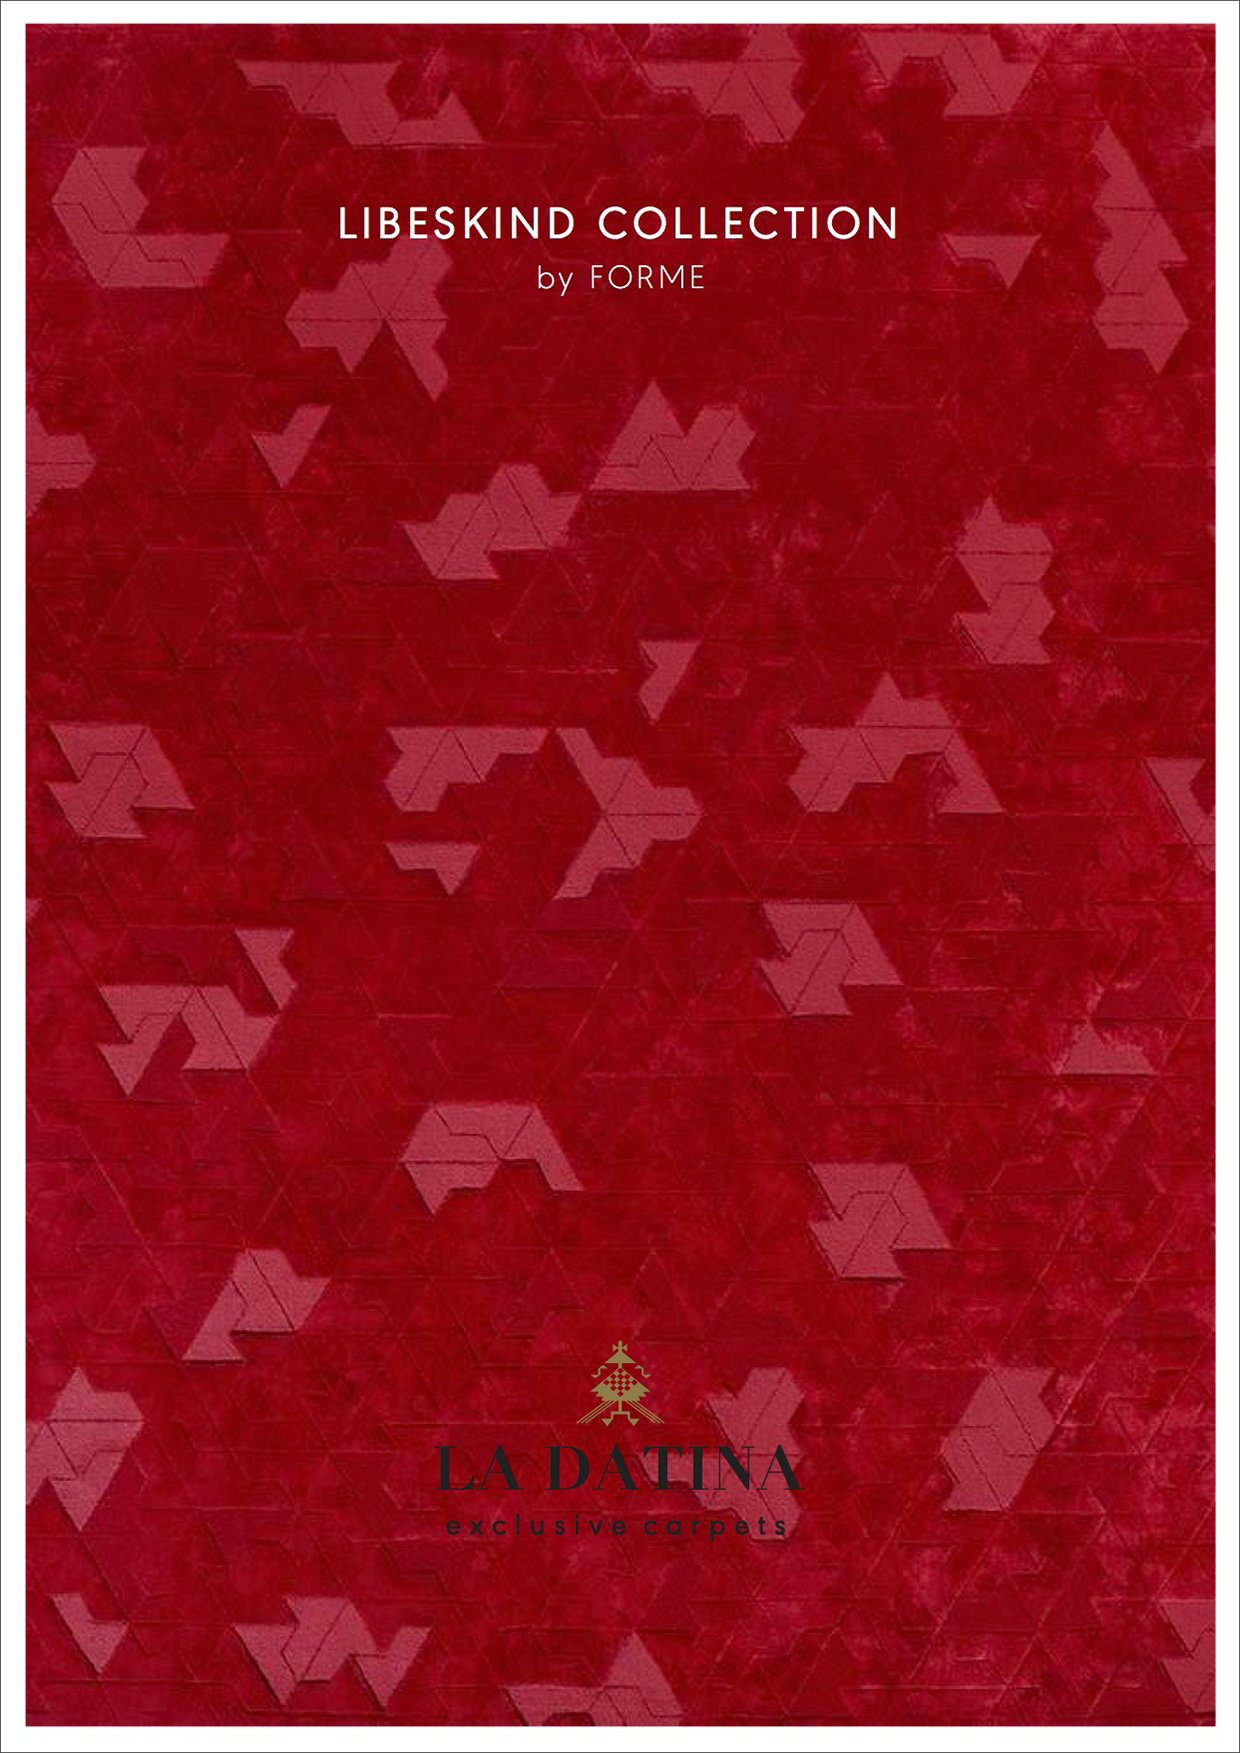 Libeskind carpet catalogue La Datina